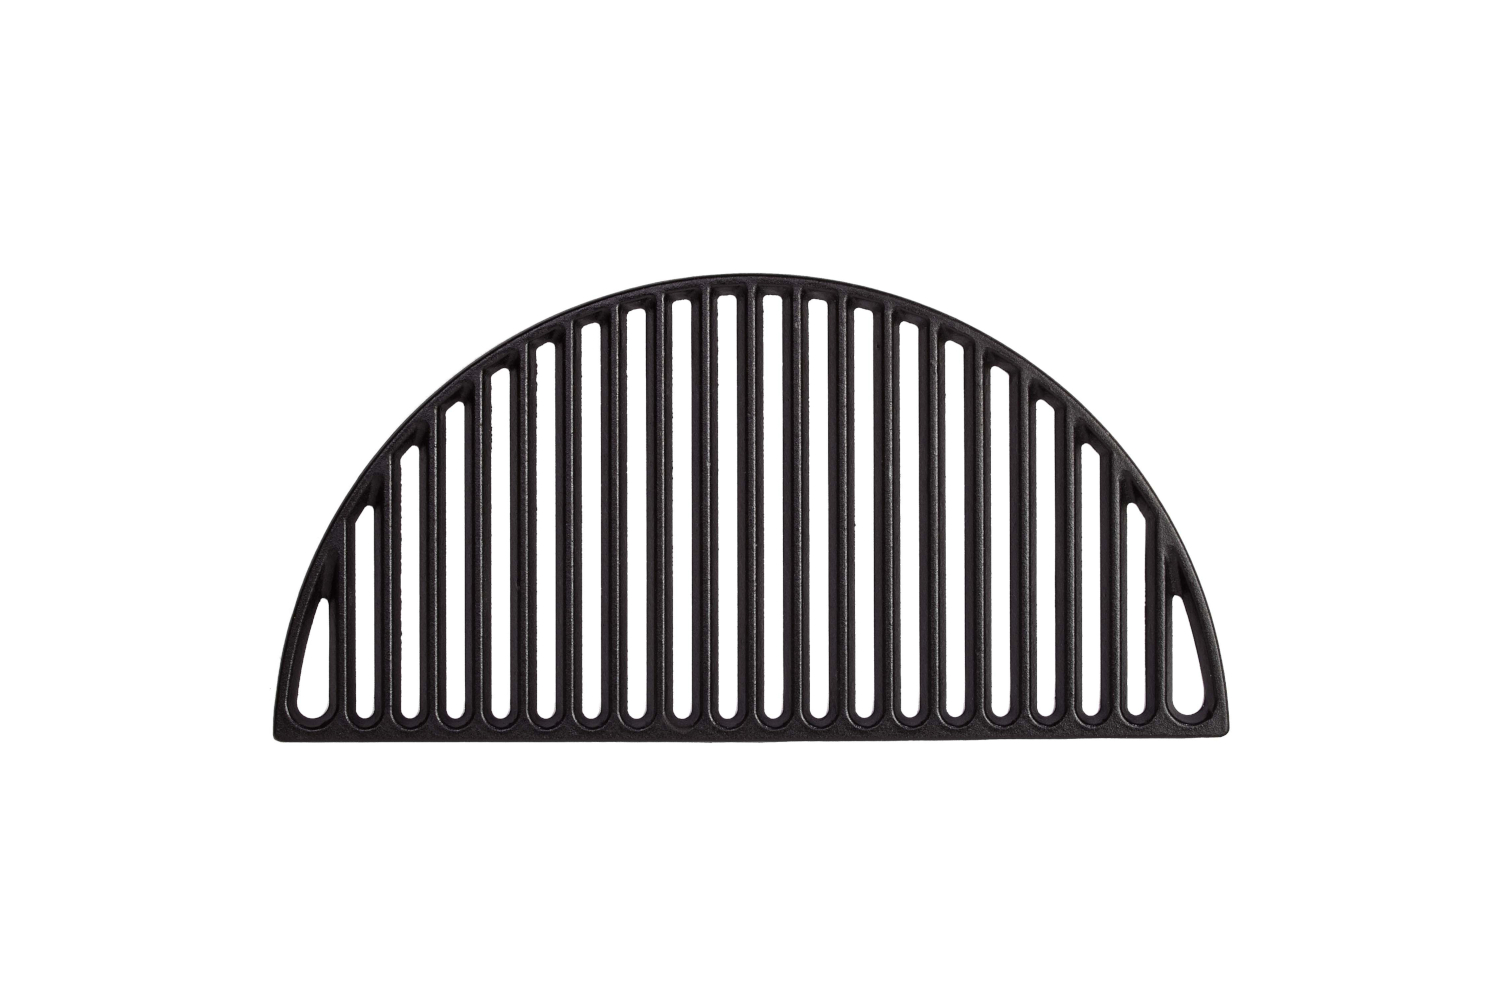 Kamado Joe Half Moon Cast Iron Grate - Classic II